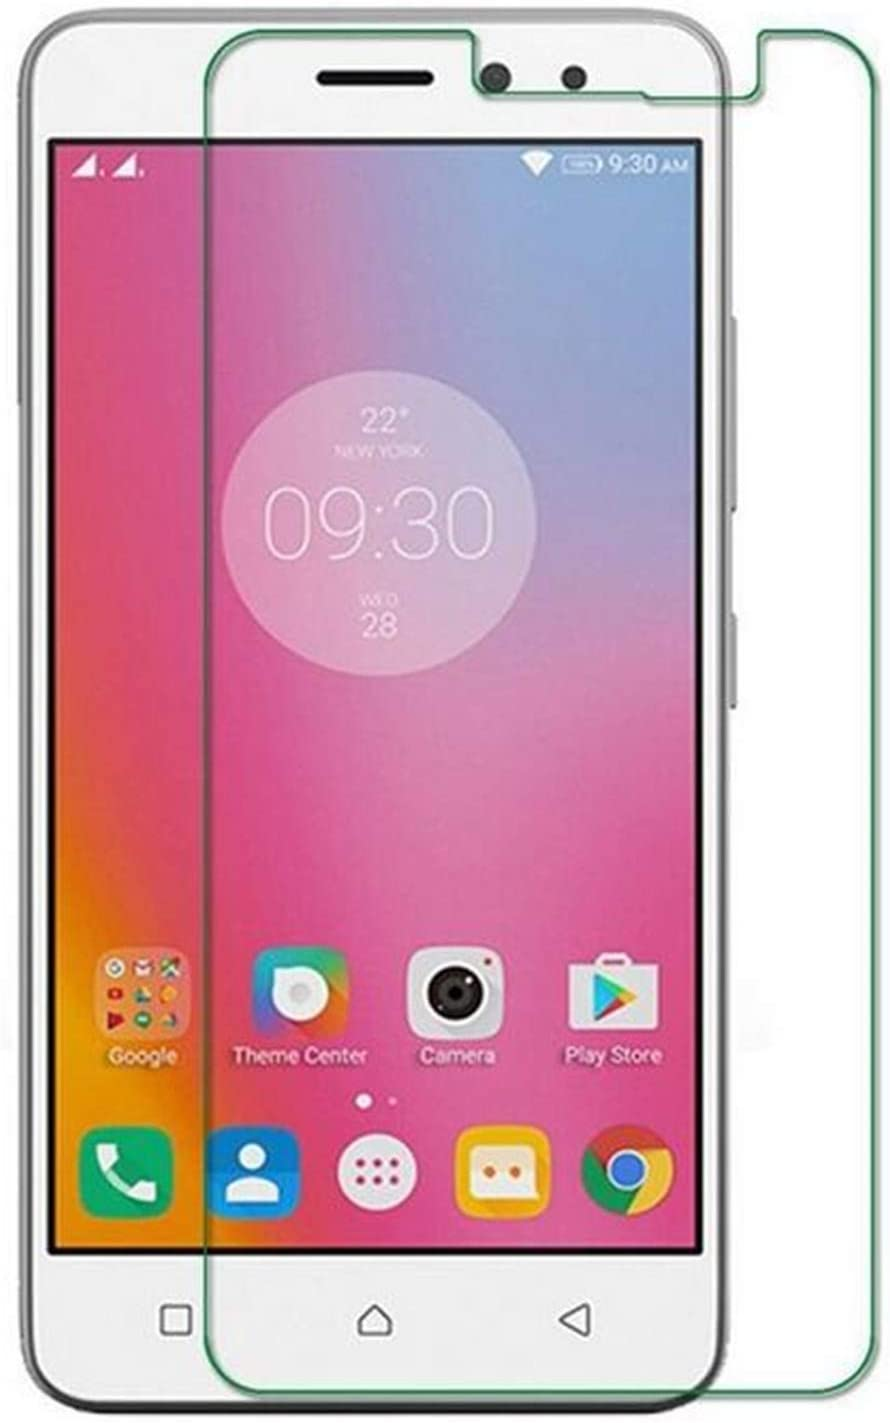 Luckyandery Tempered Glass for Lenovo K6 Power Screen Protector Lenovo K6 Power Screen Tempered Glass Cover 9H Hardness,Anti-Scratch,Anti-Fingerprint